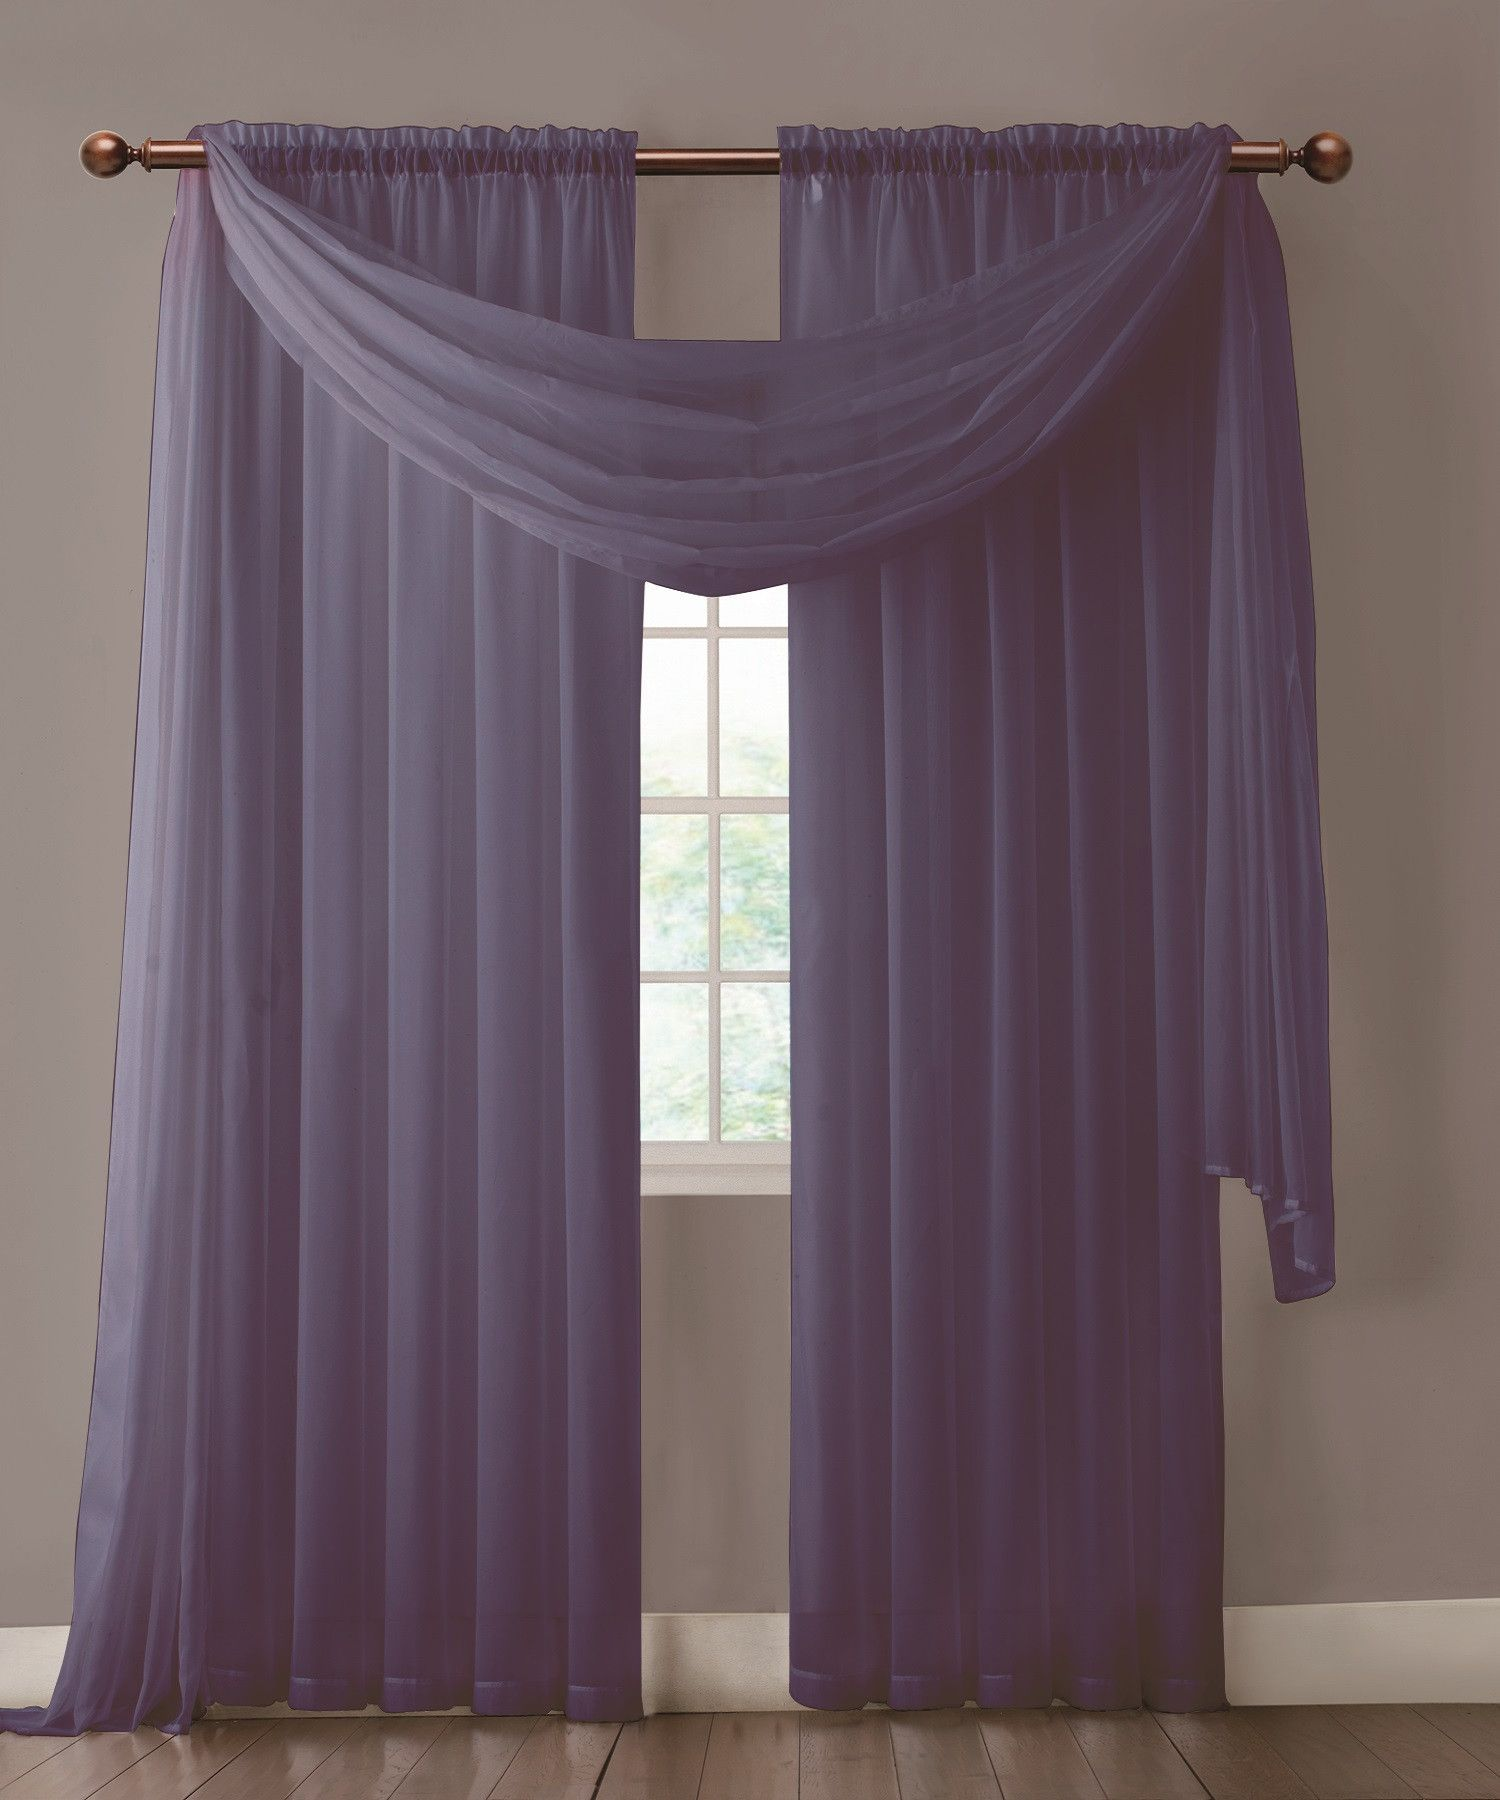 Warm Home Designs Pair Of Indigo Navy Blue Sheer Curtains Or Extra Long Window Scarf